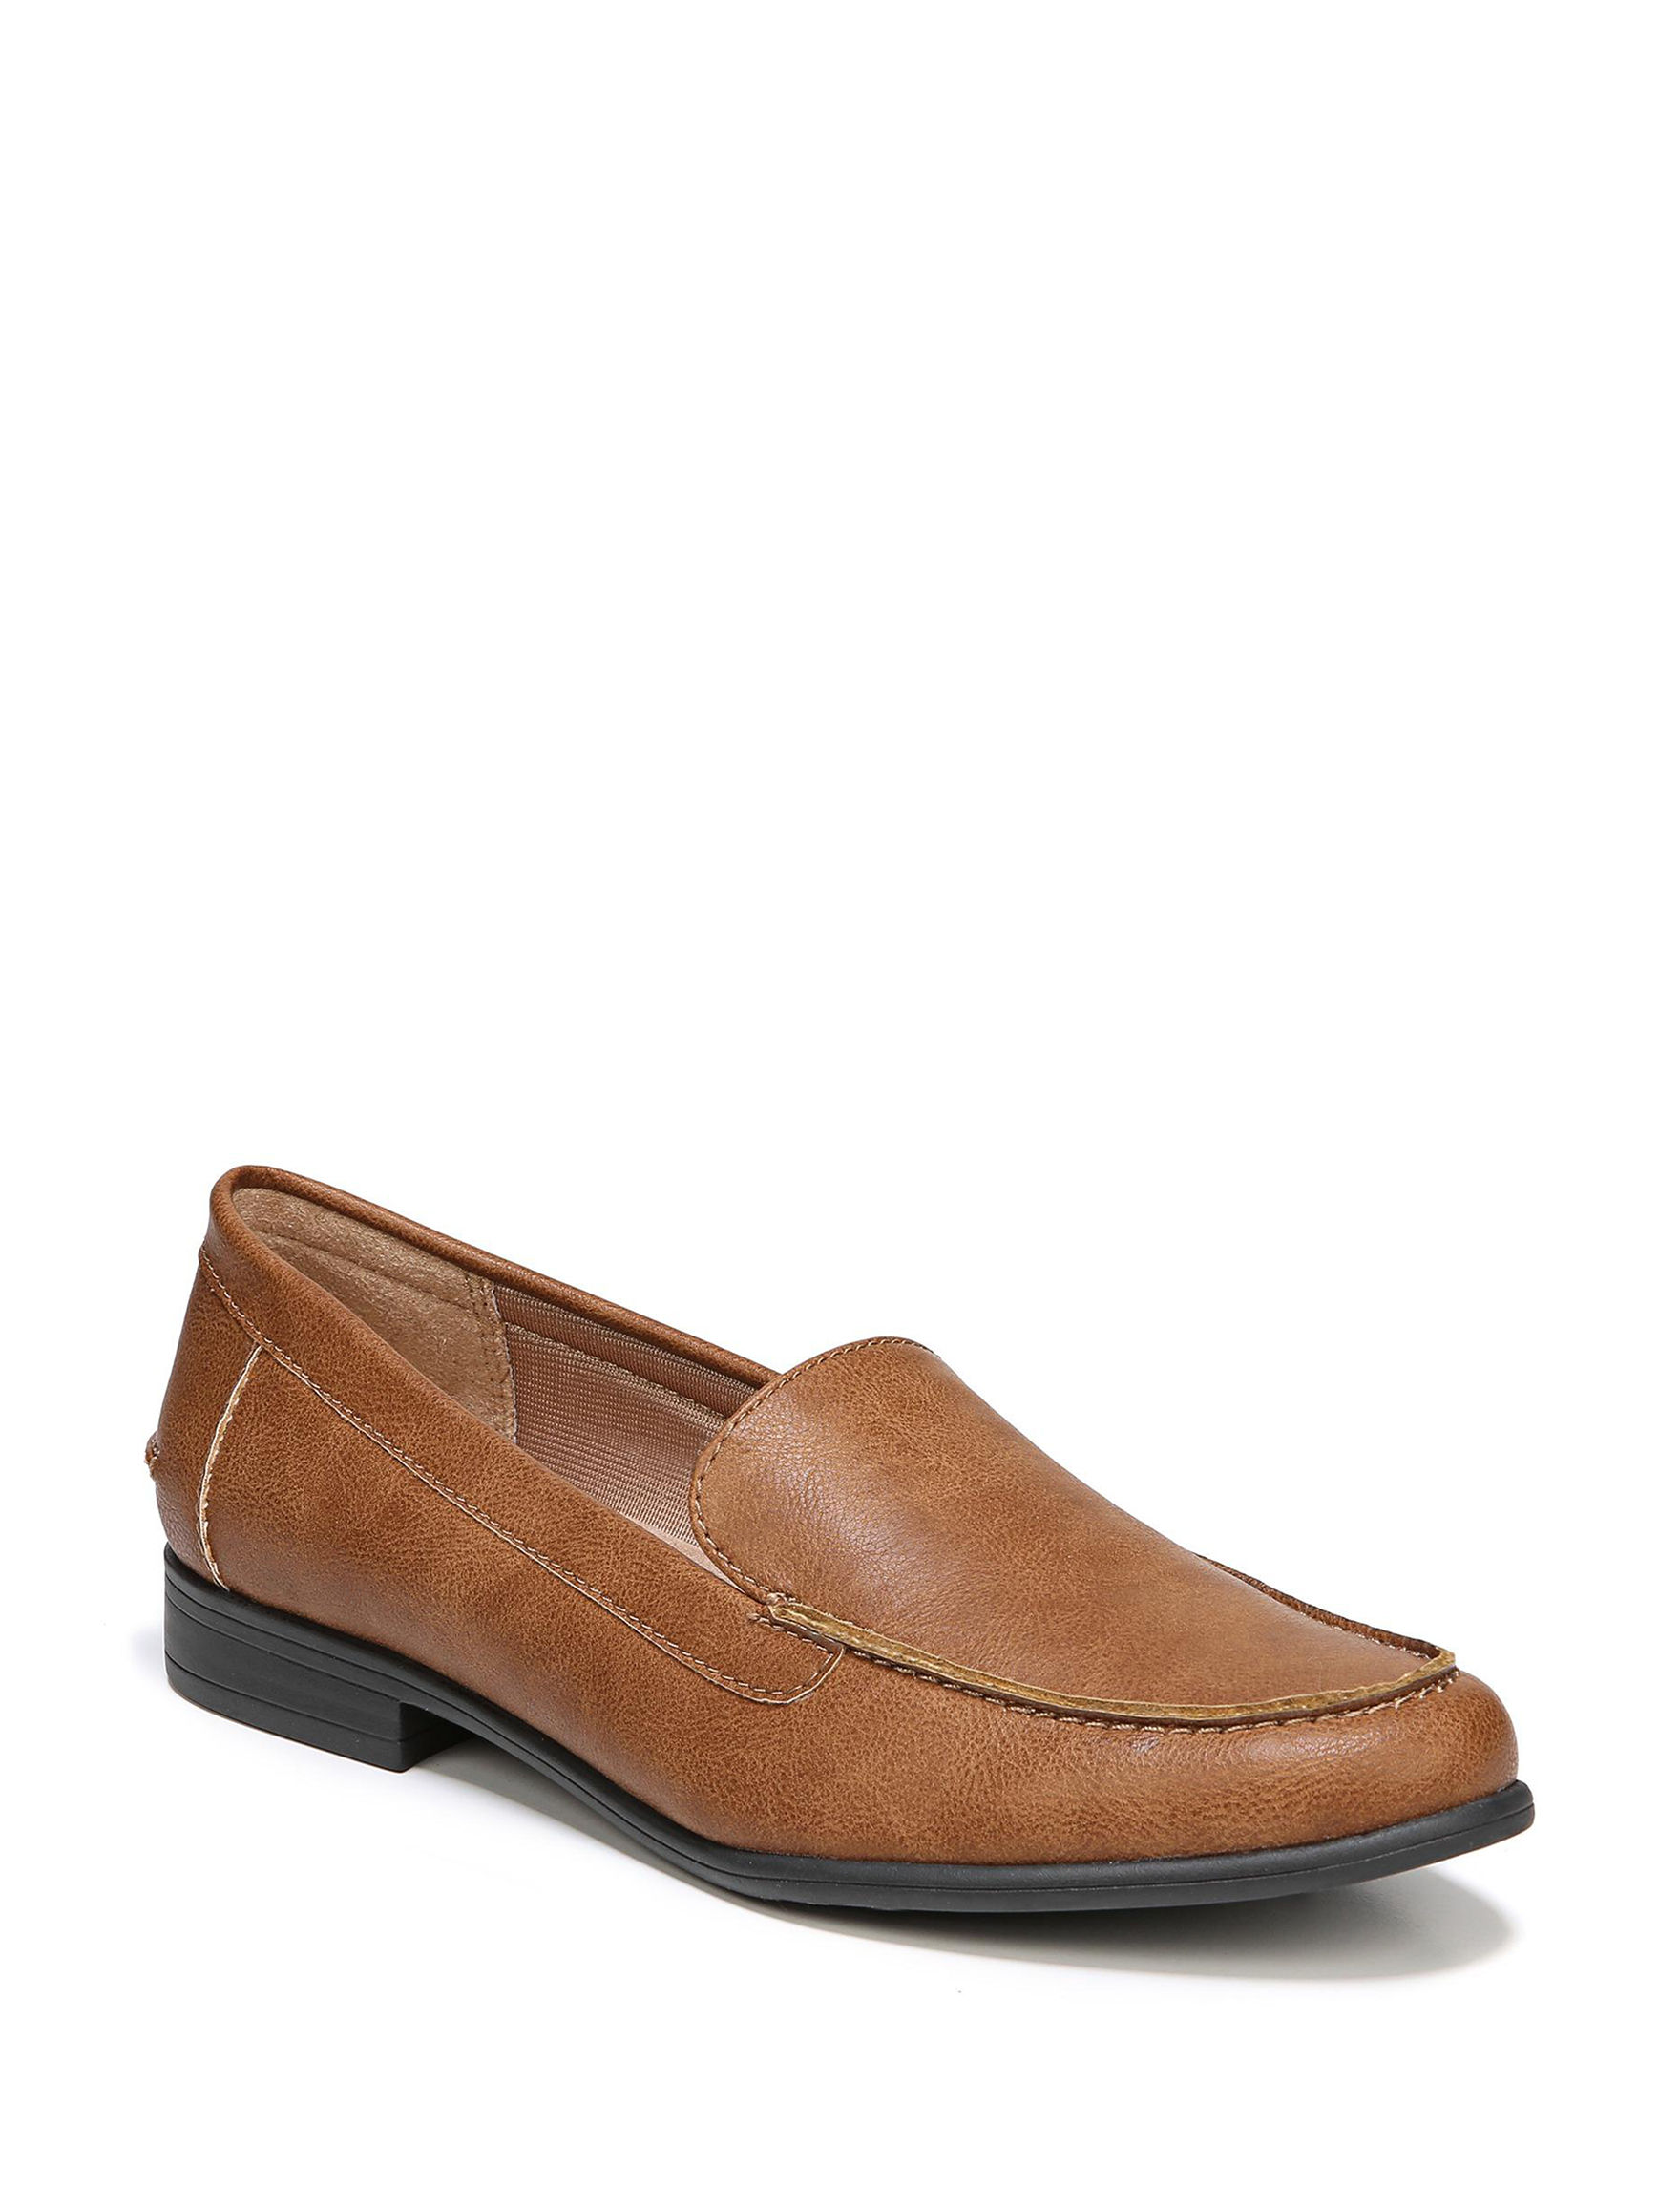 Lifestride Tan Mules